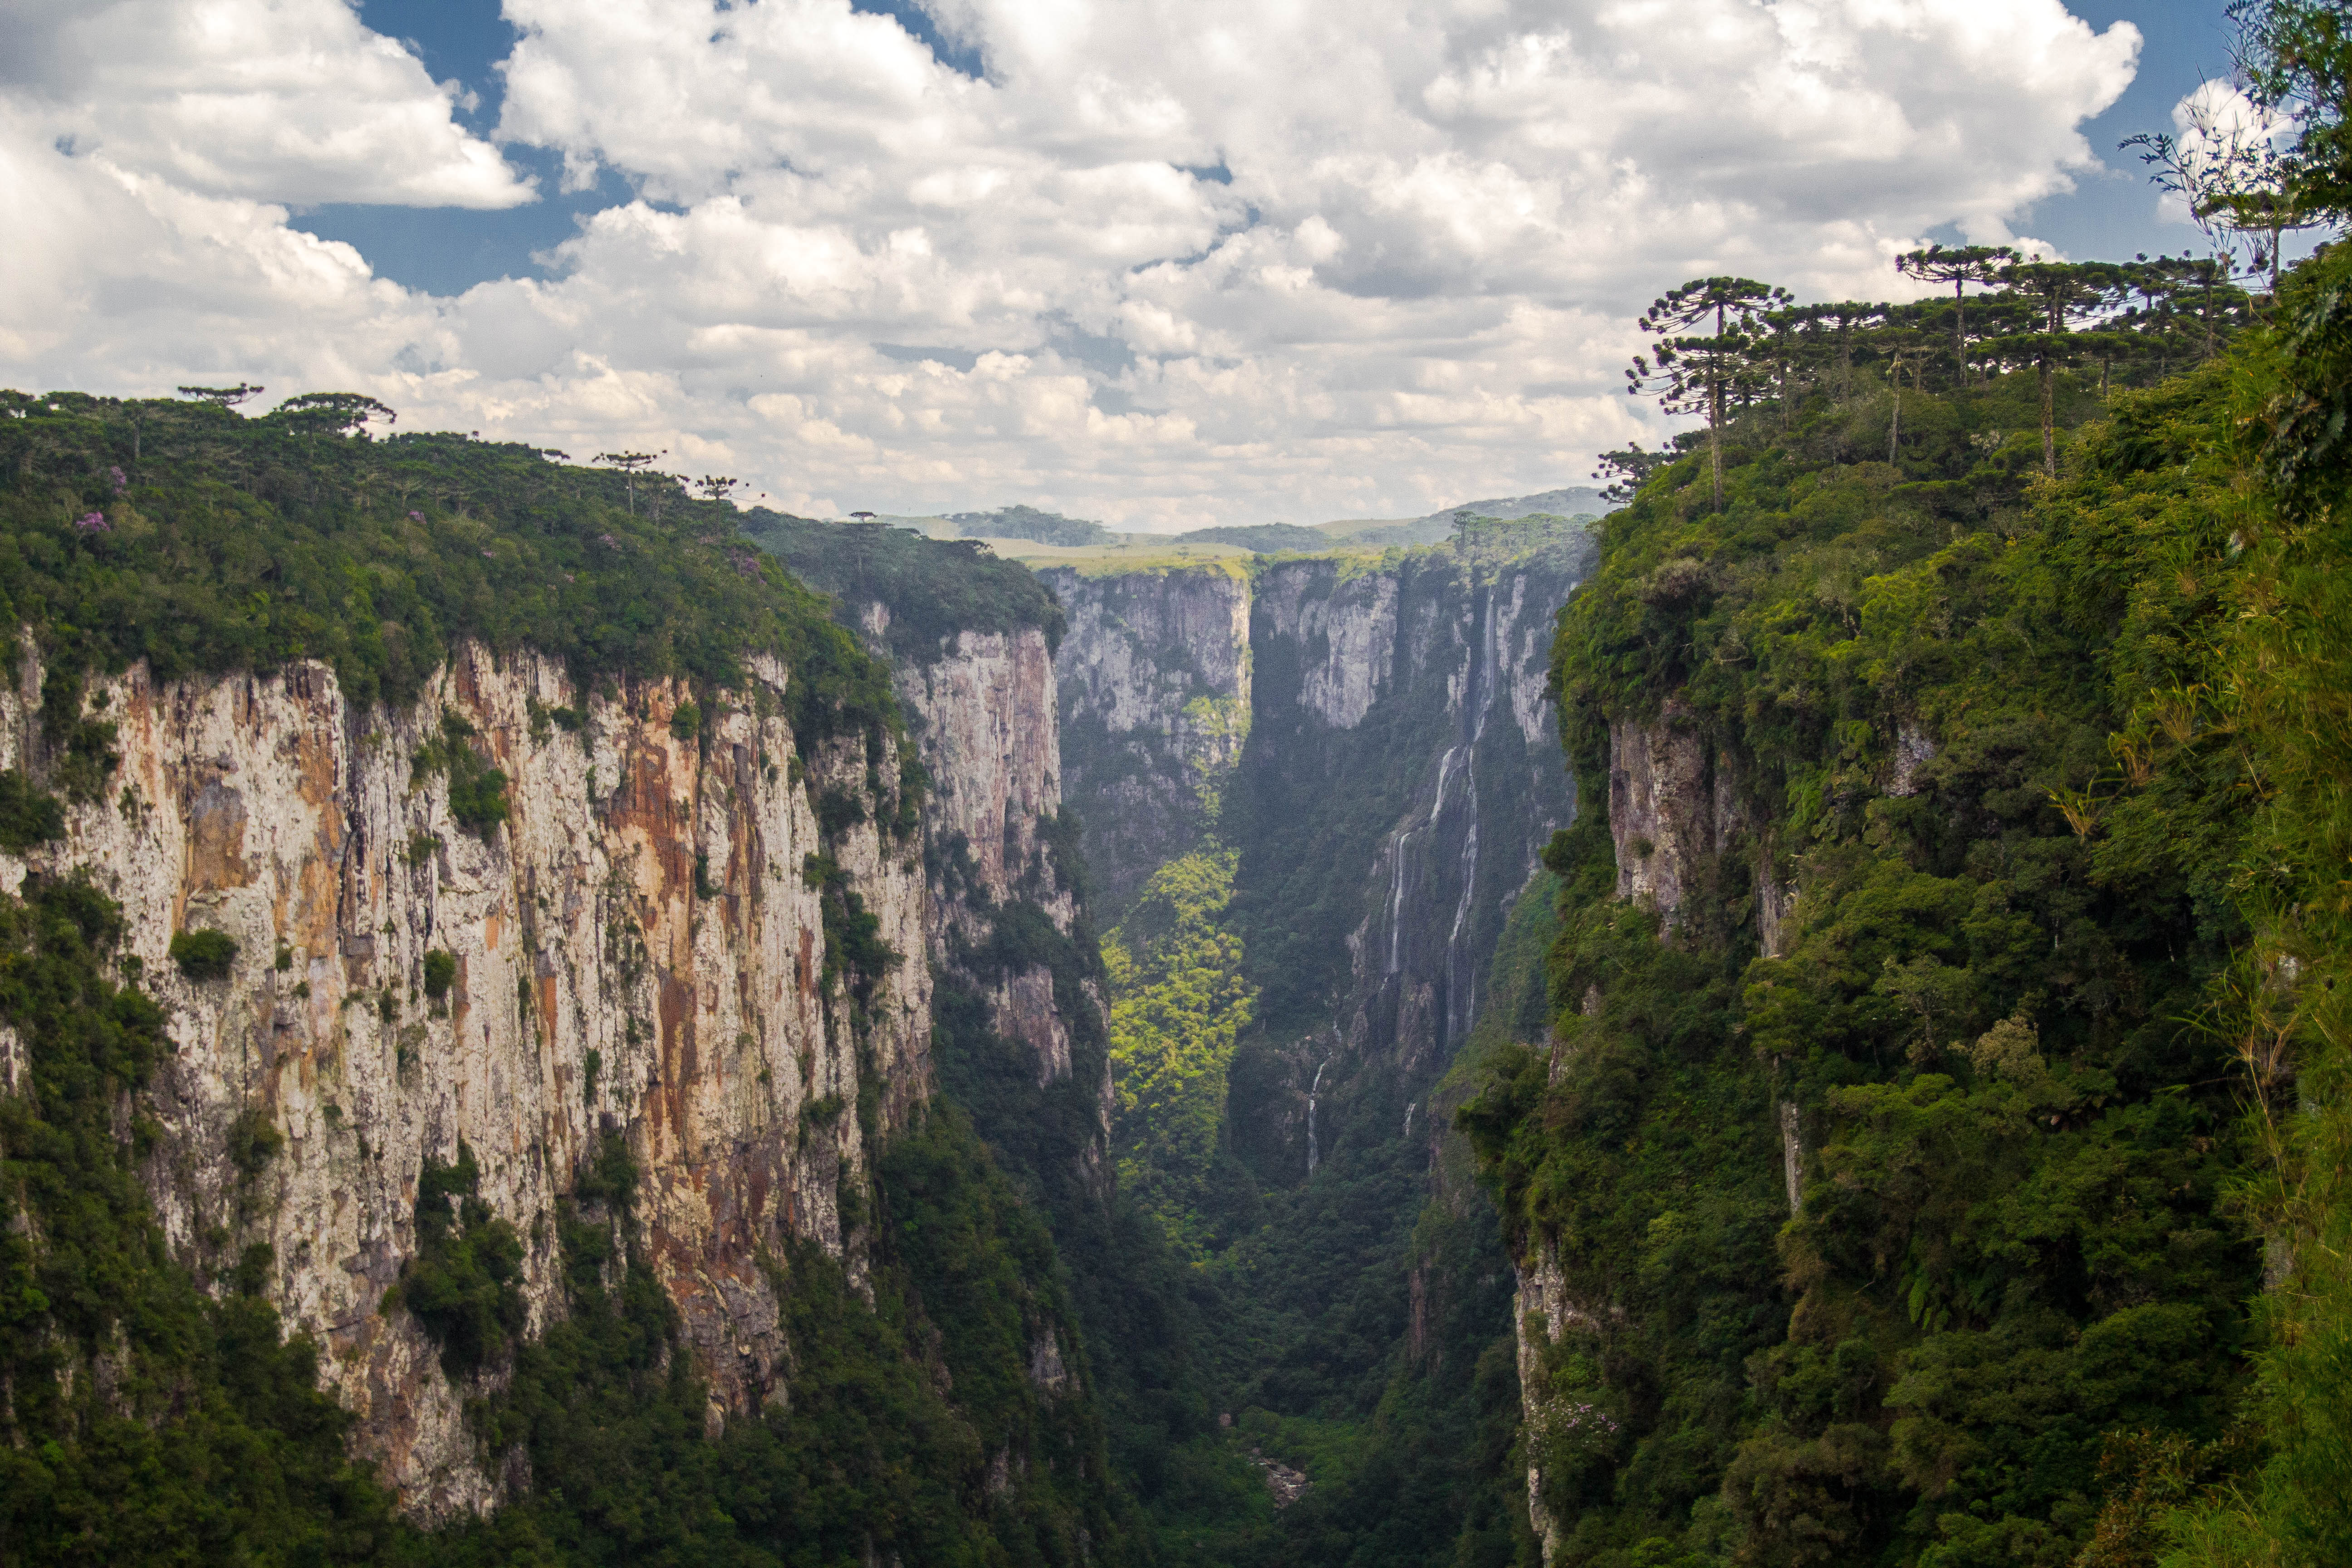 Canyon Landscape In Brazil With Clouds Image Free Stock Photo Public Domain Photo Cc0 Images